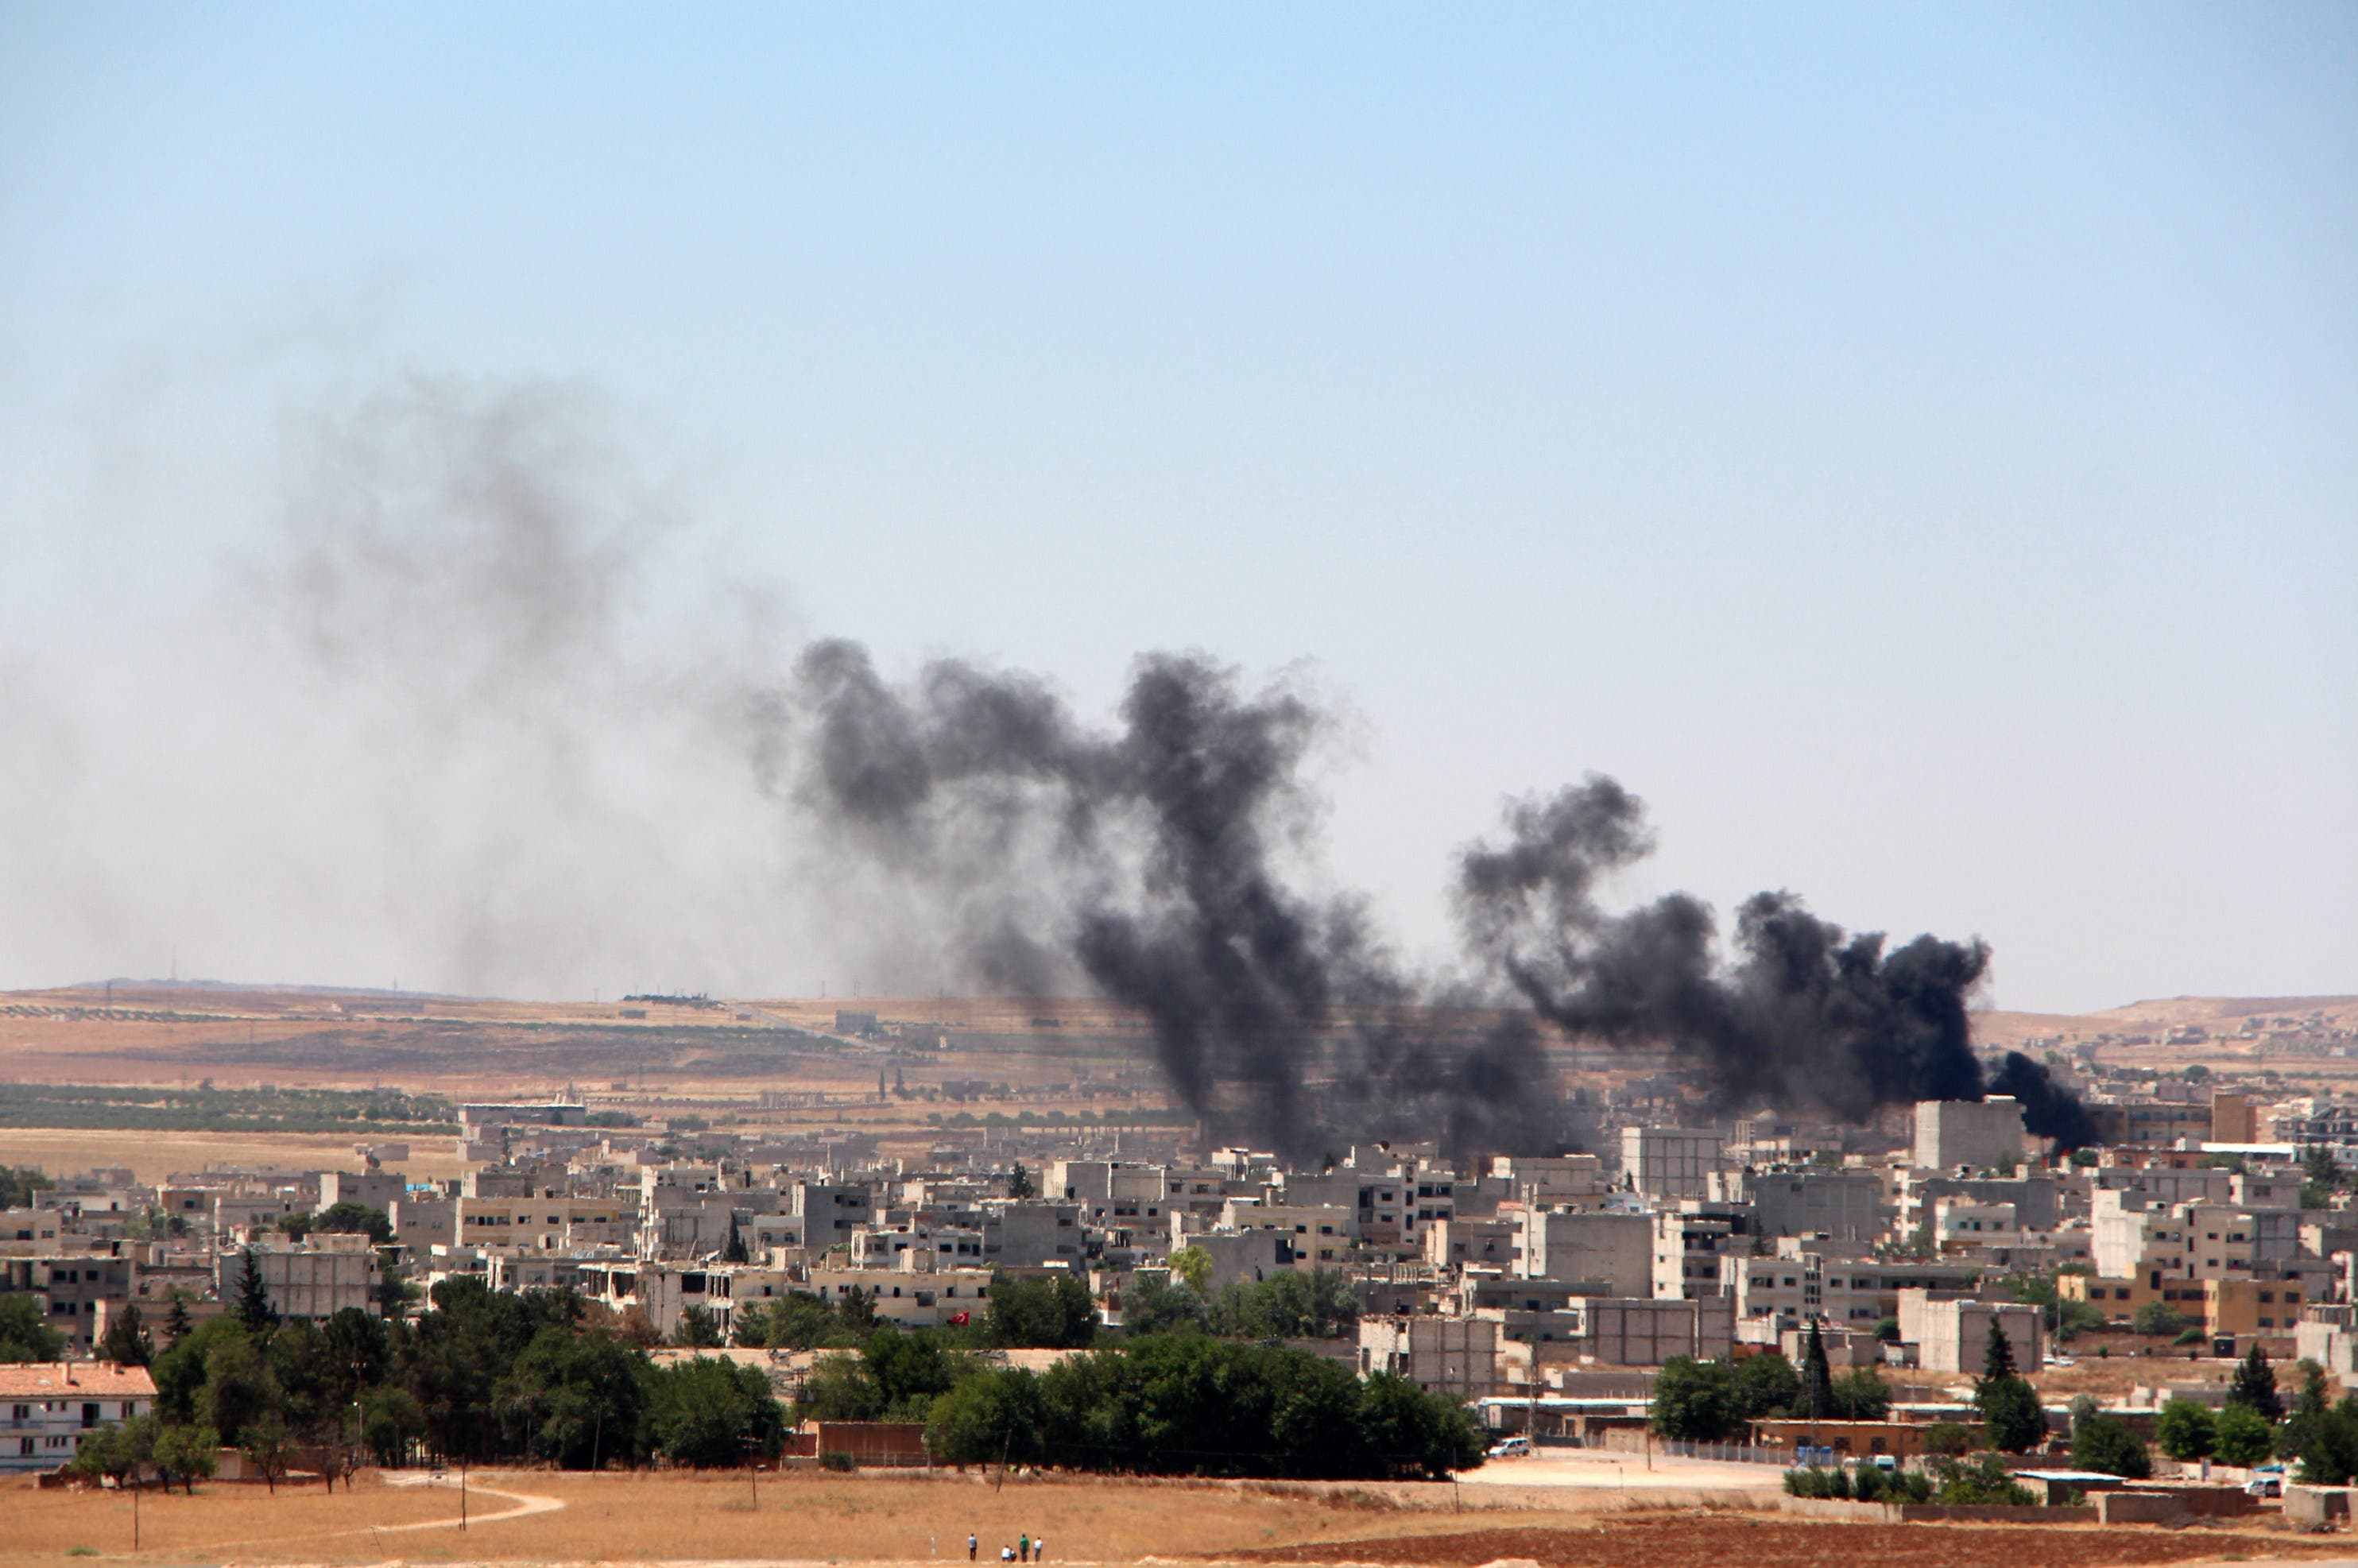 moke billow from the Syrian town of Kobane, as seen from the Turkish side of the border in Suruc in Sanliurfa province on June 25, 2015. (AFP)